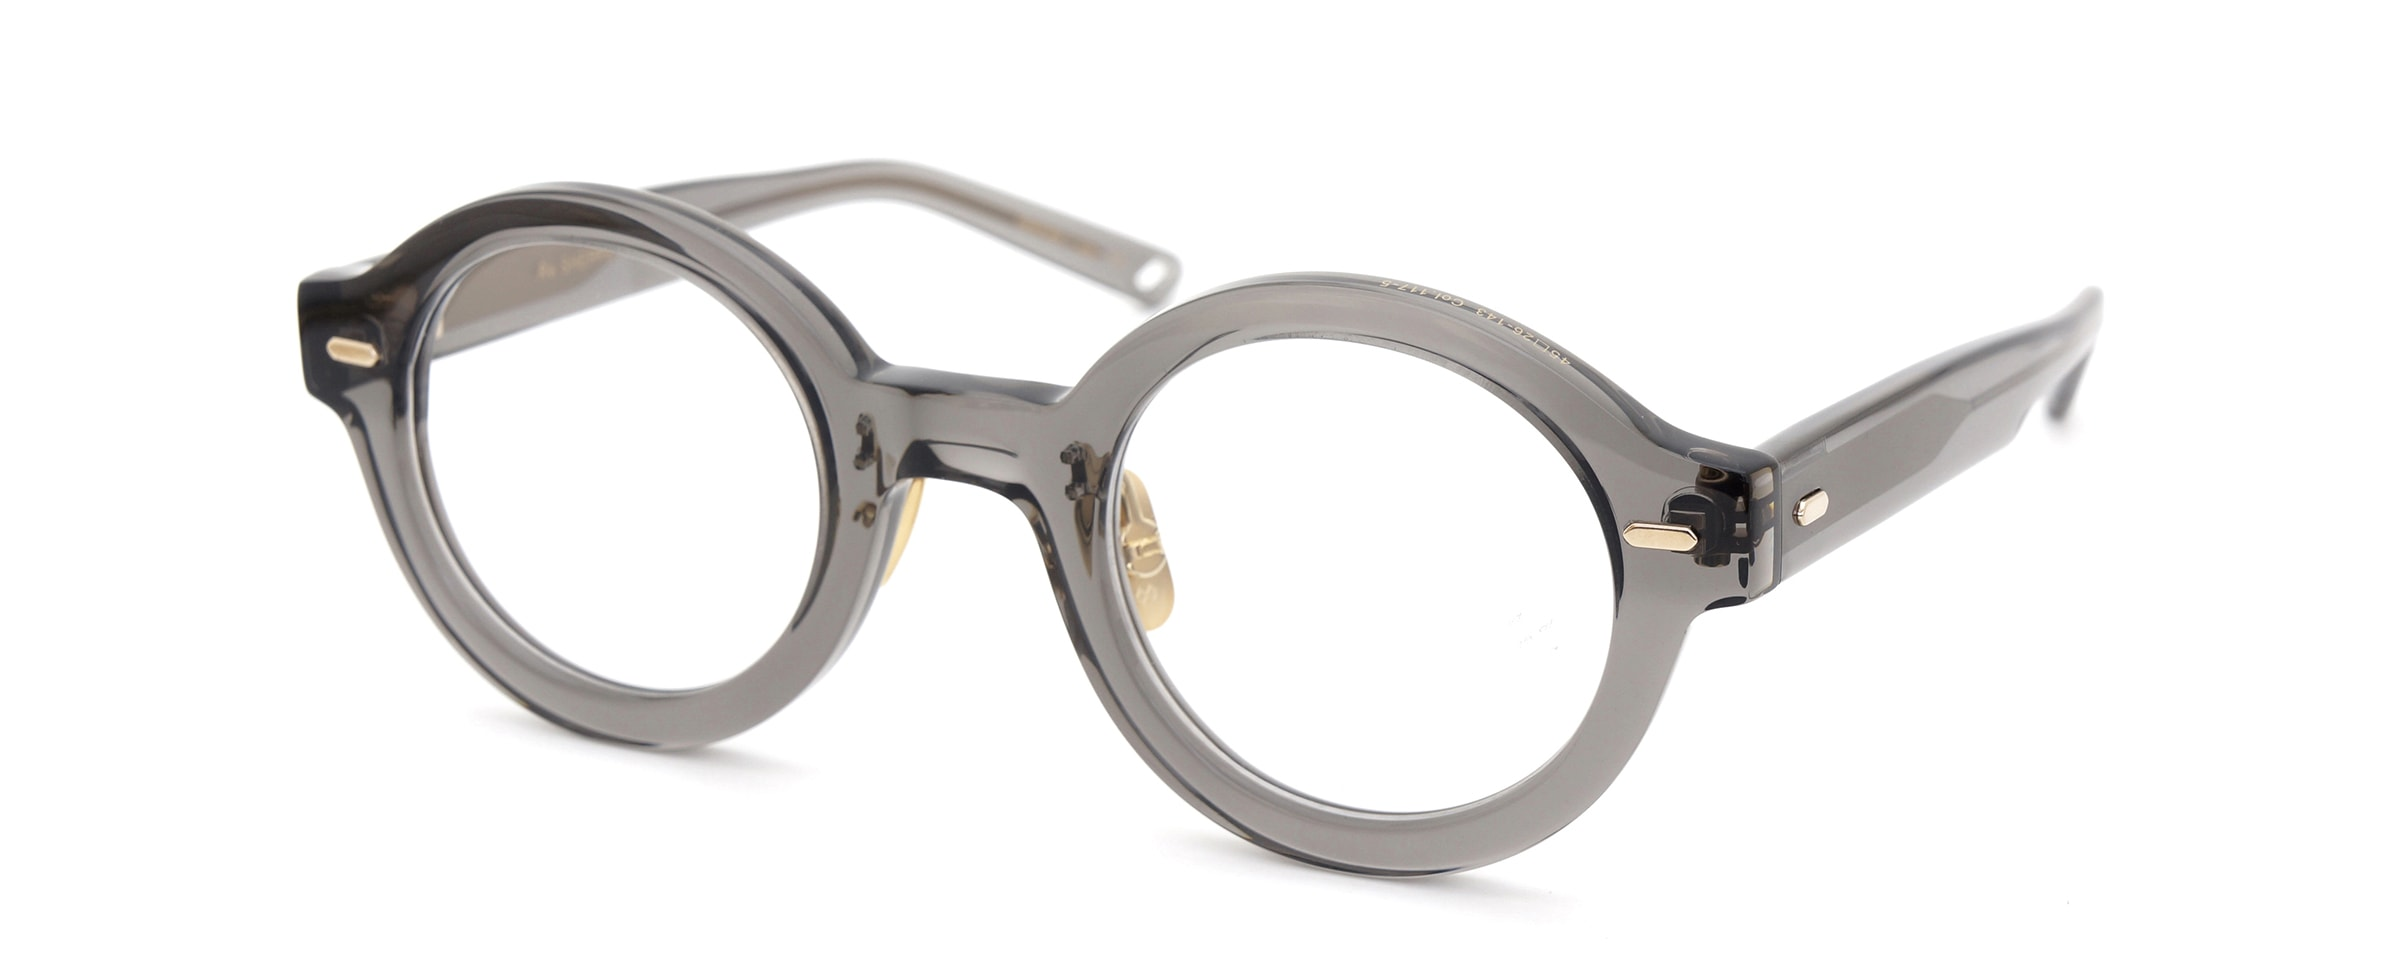 OG × OLIVER GOLDSMITH Re:SHEPPERTON 45 リ:シェパートン